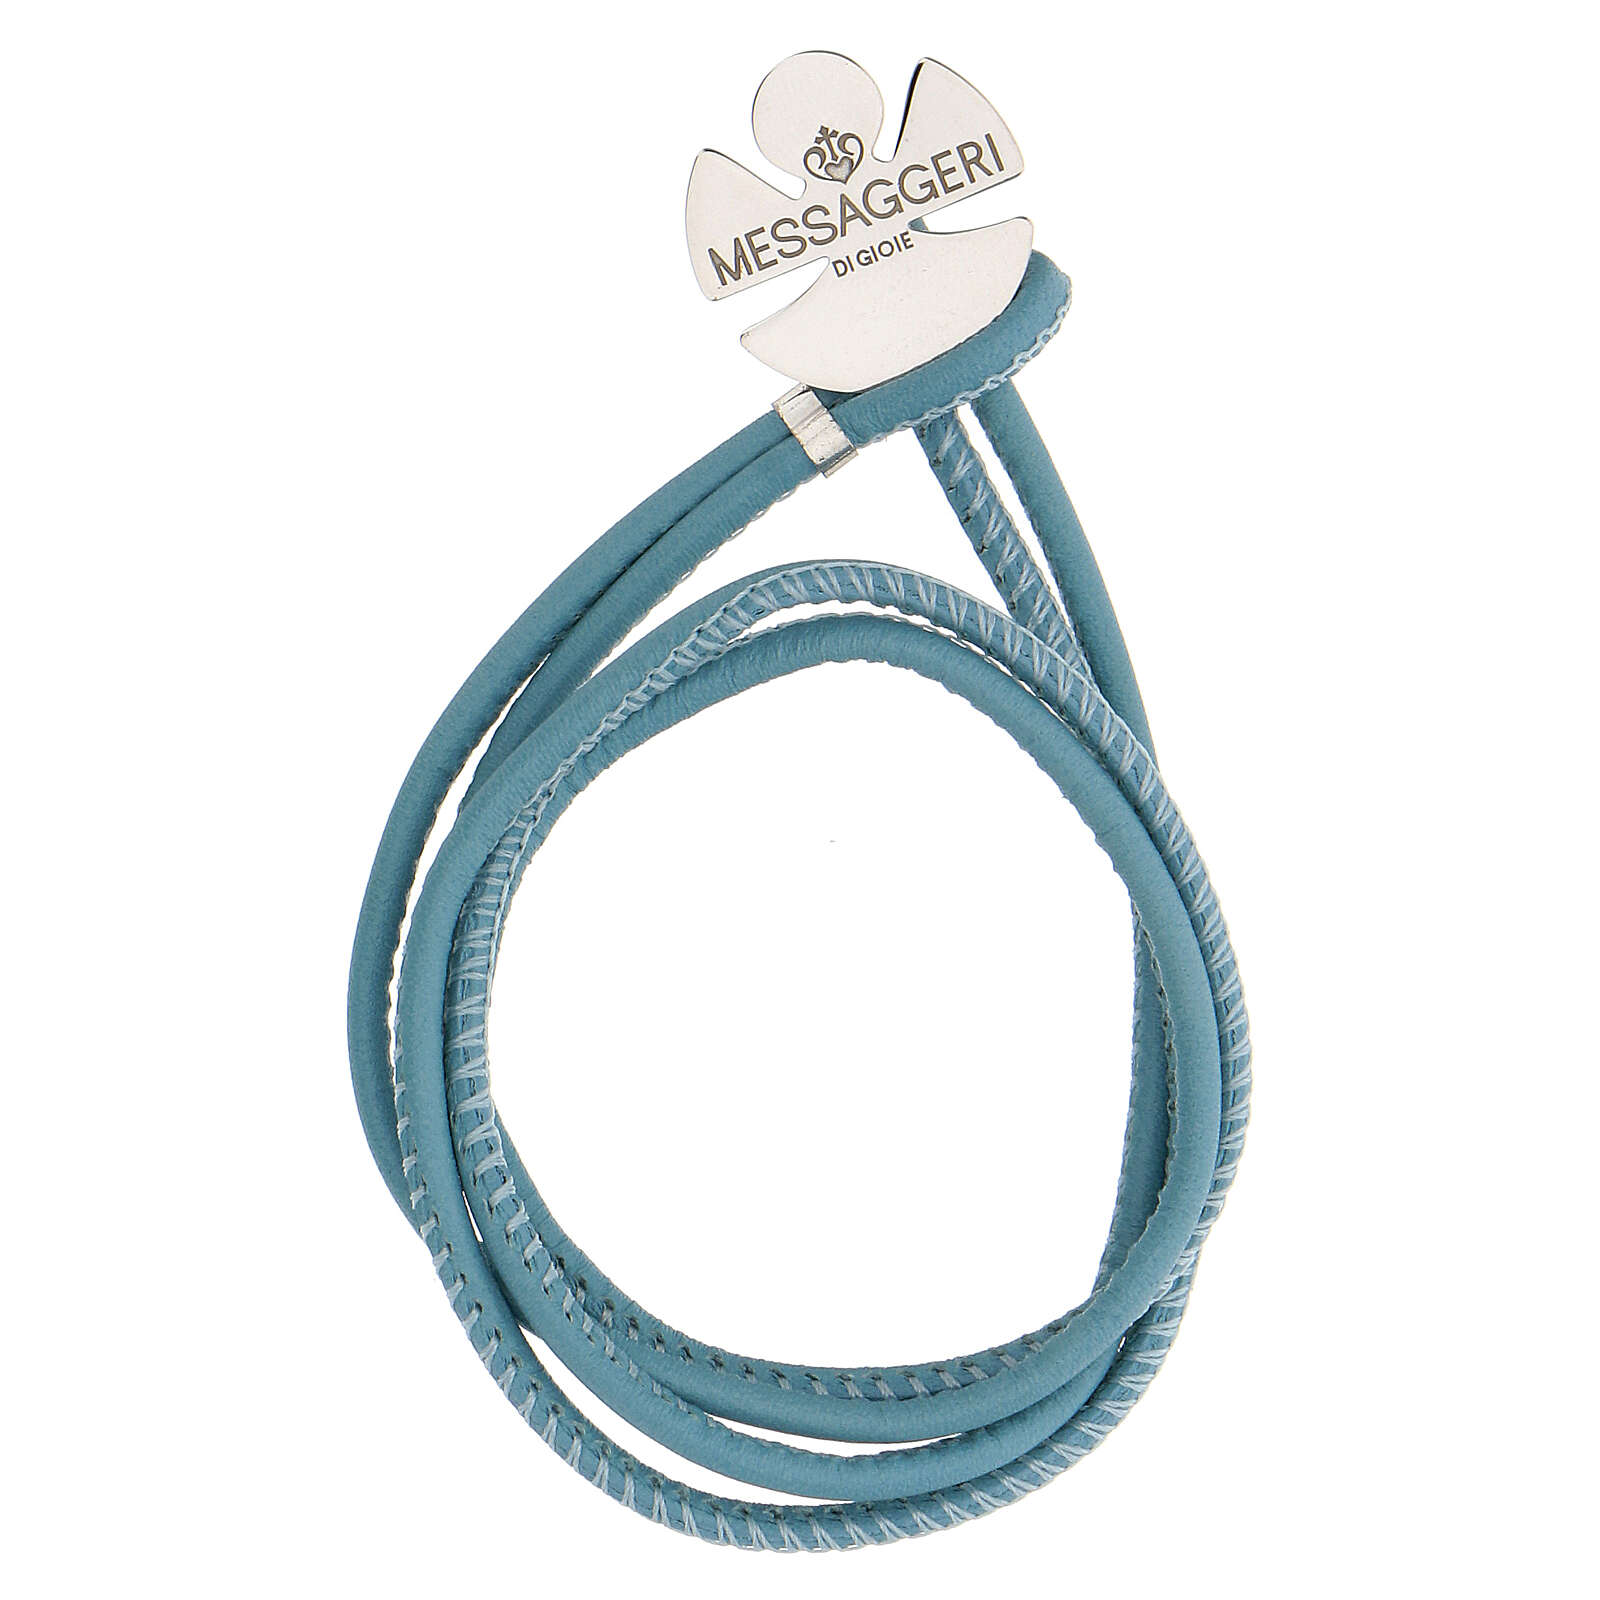 Bracelet Messaggeri di Gioie in 925 silver, sky blue 4